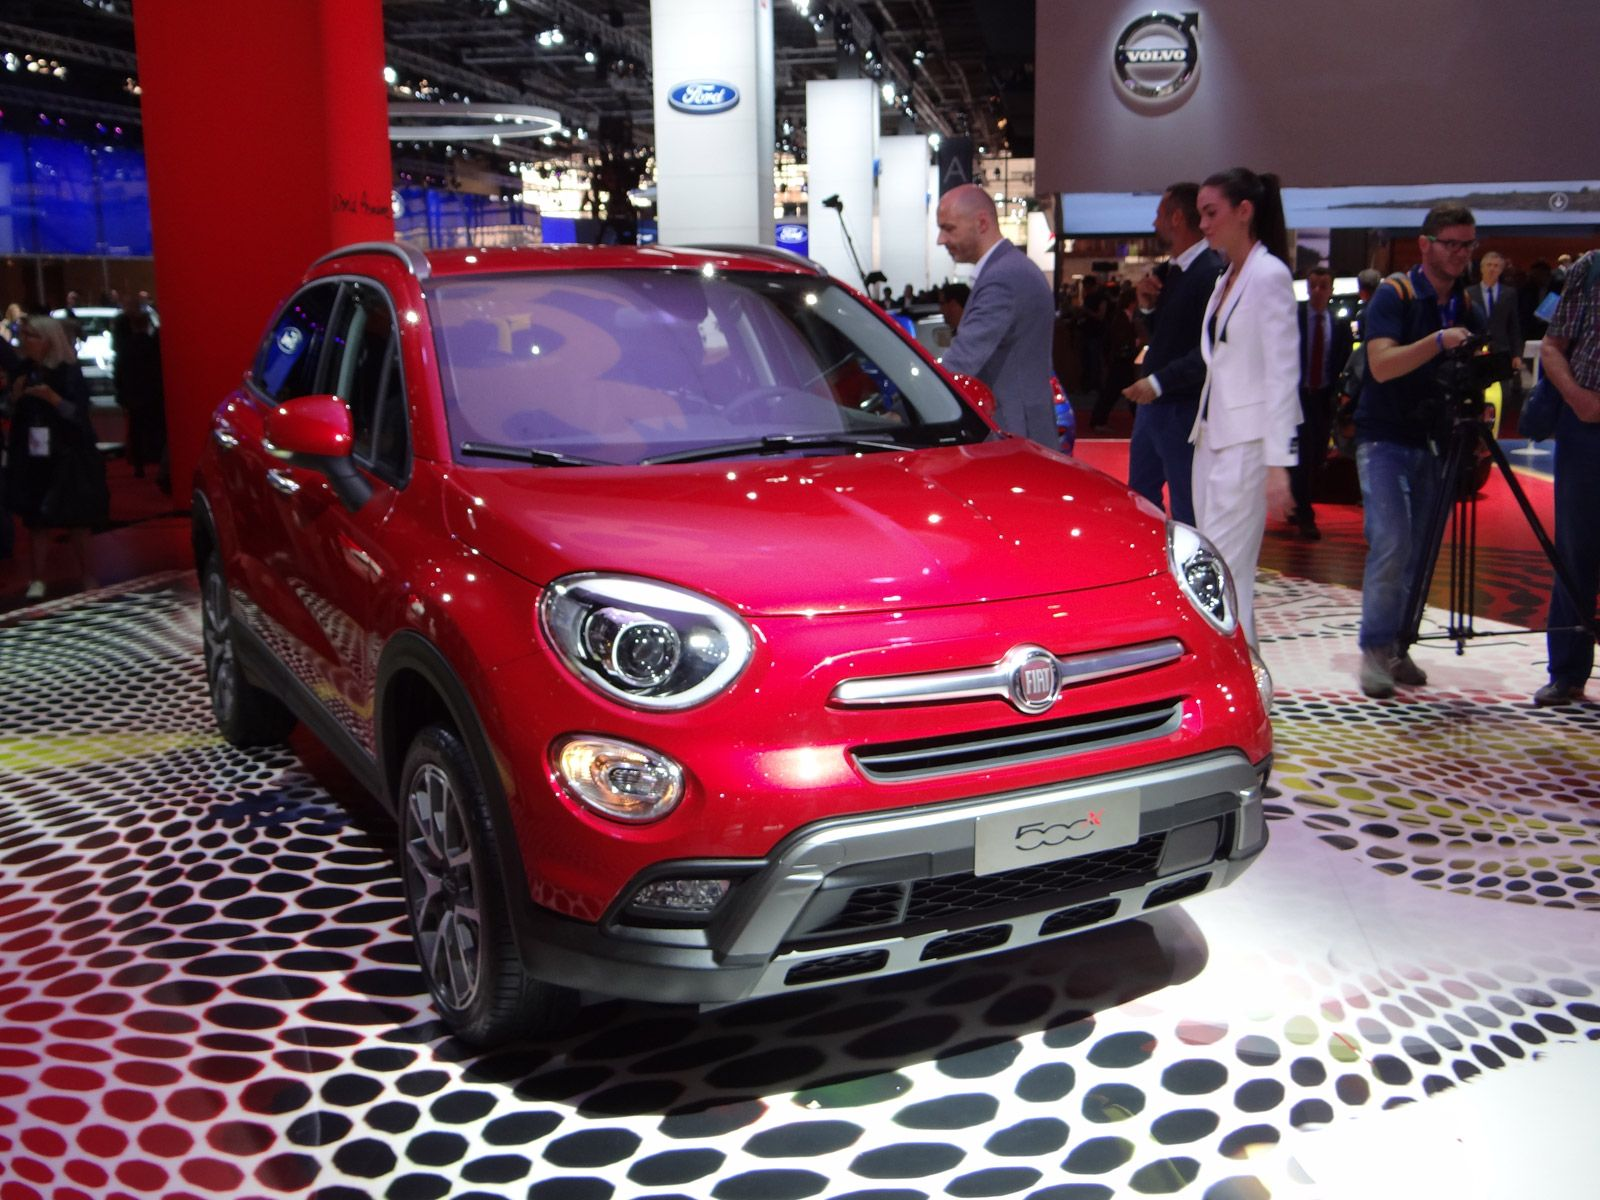 2016 fiat 500x 2014 paris auto show see more pictures on motor